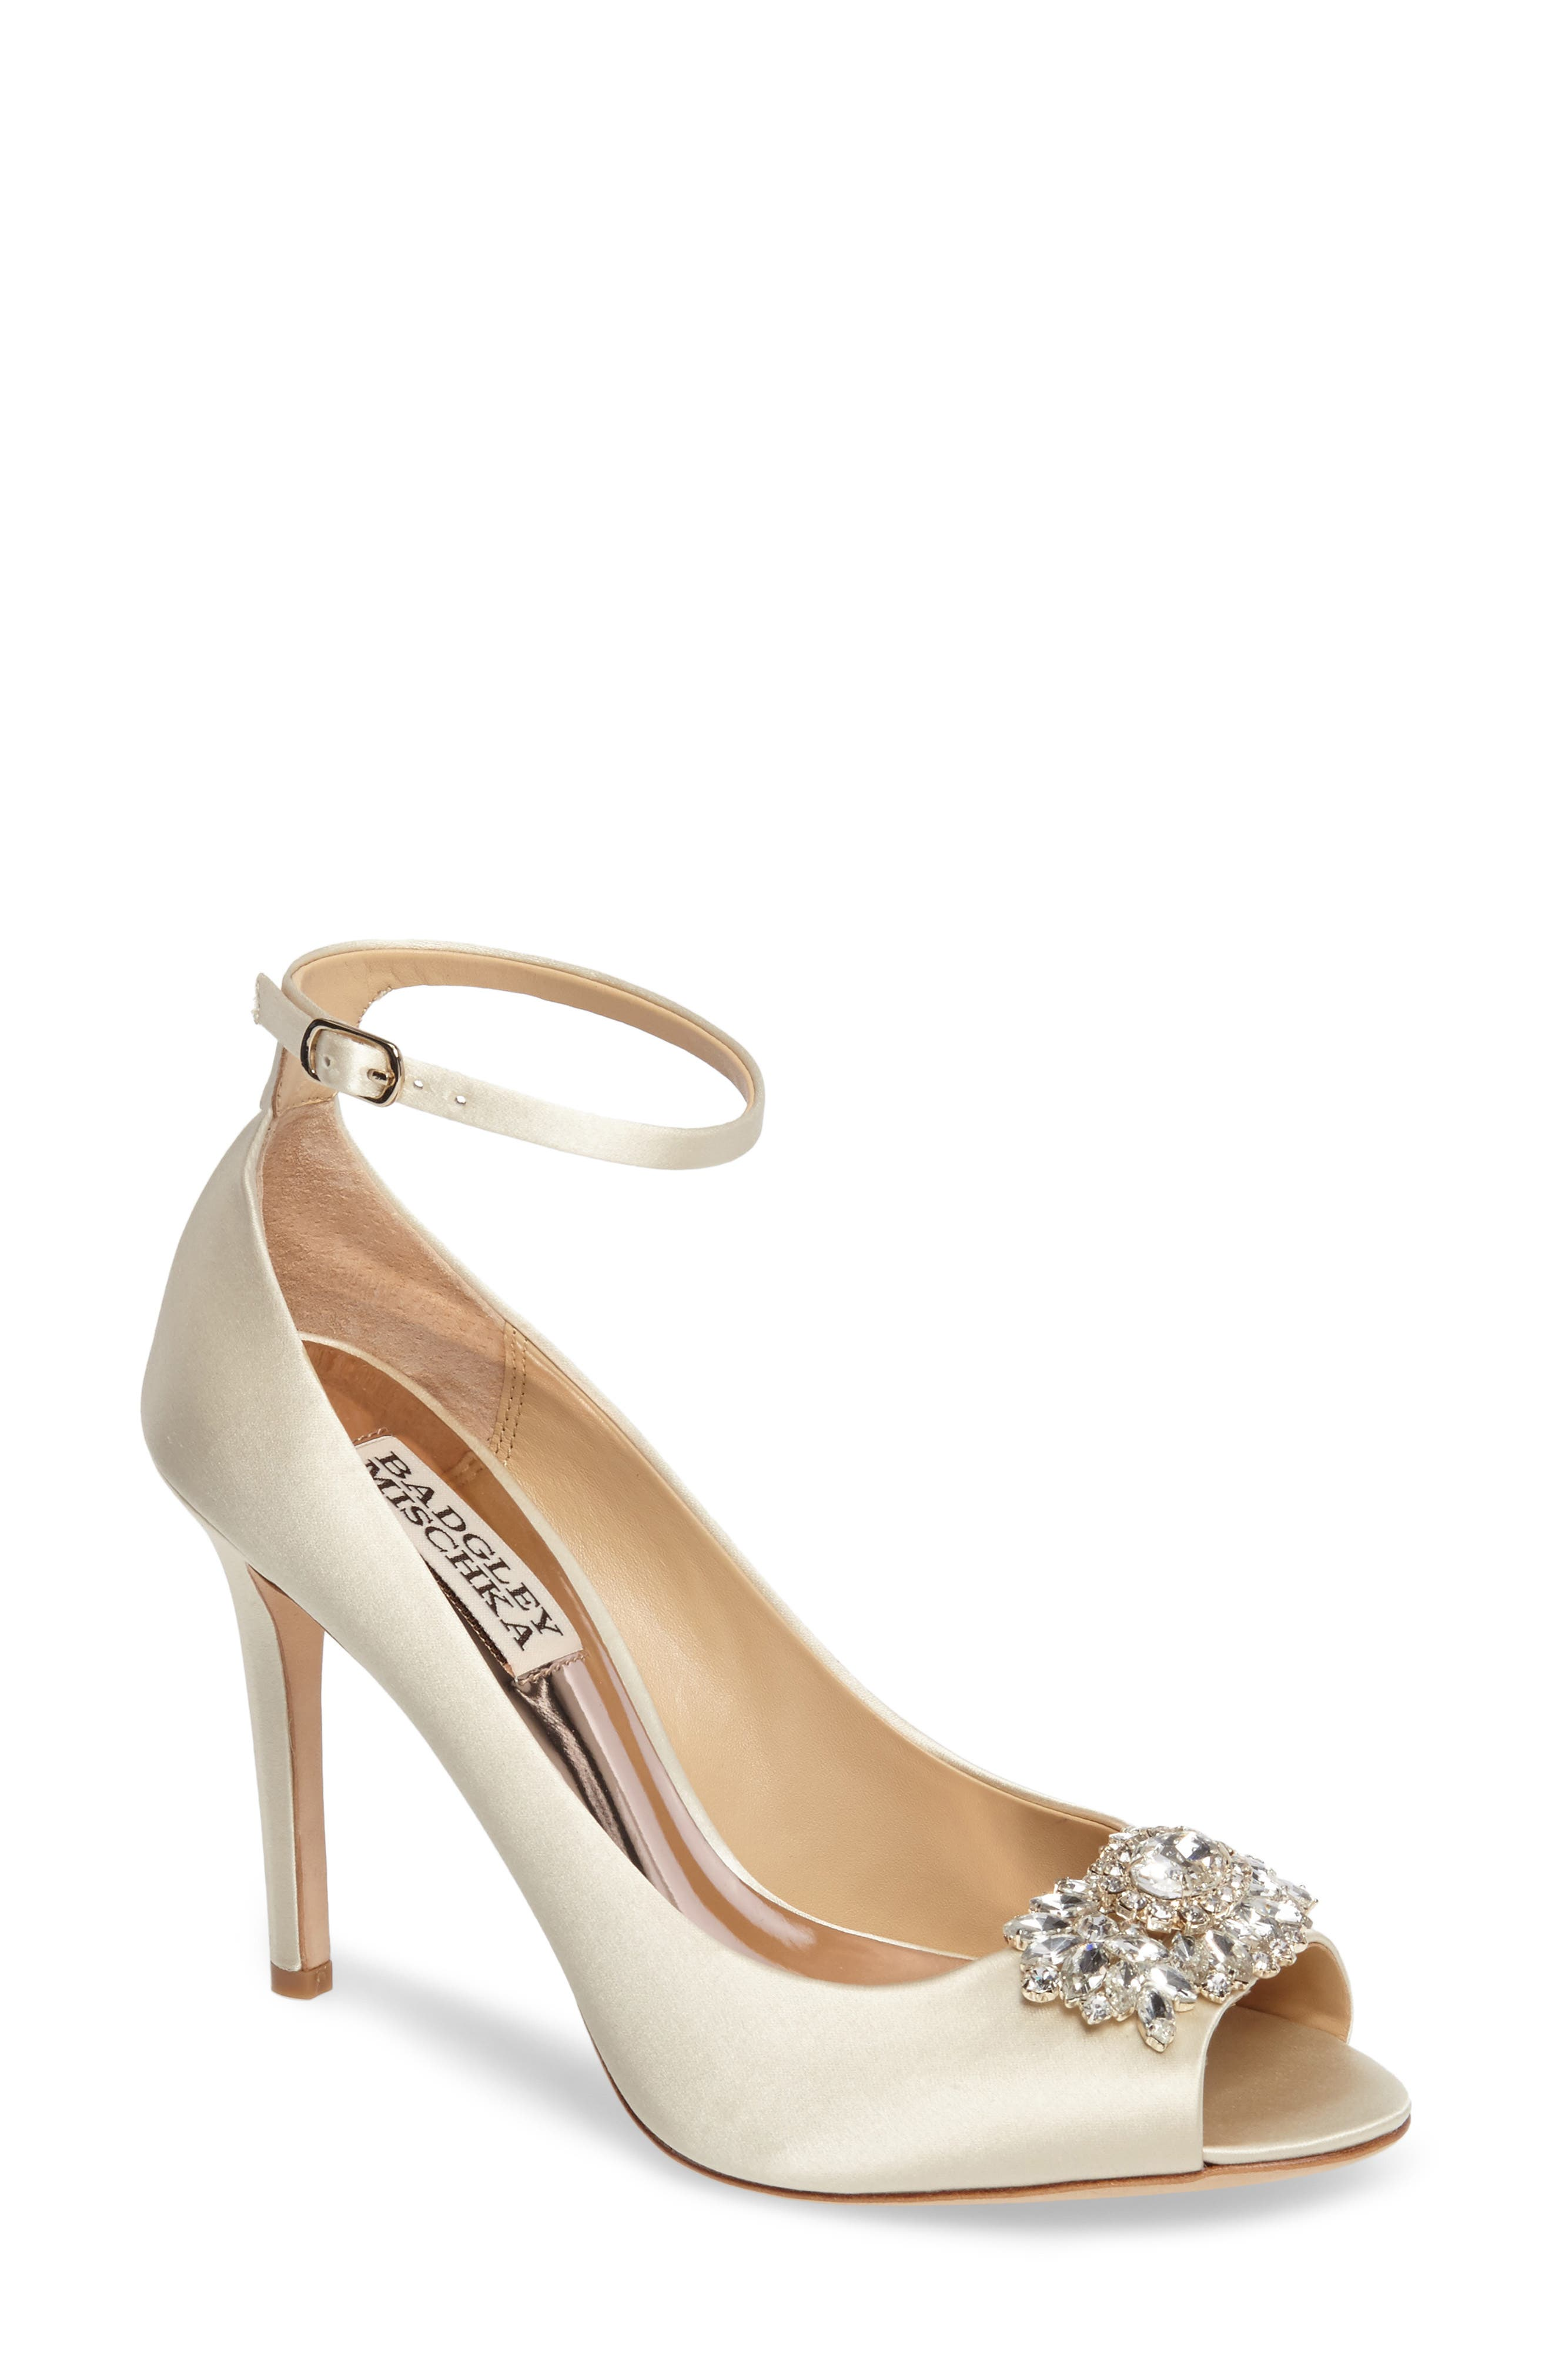 Alternate Image 1 Selected - Badgley Mischka Kali Ankle Strap Pump (Women)